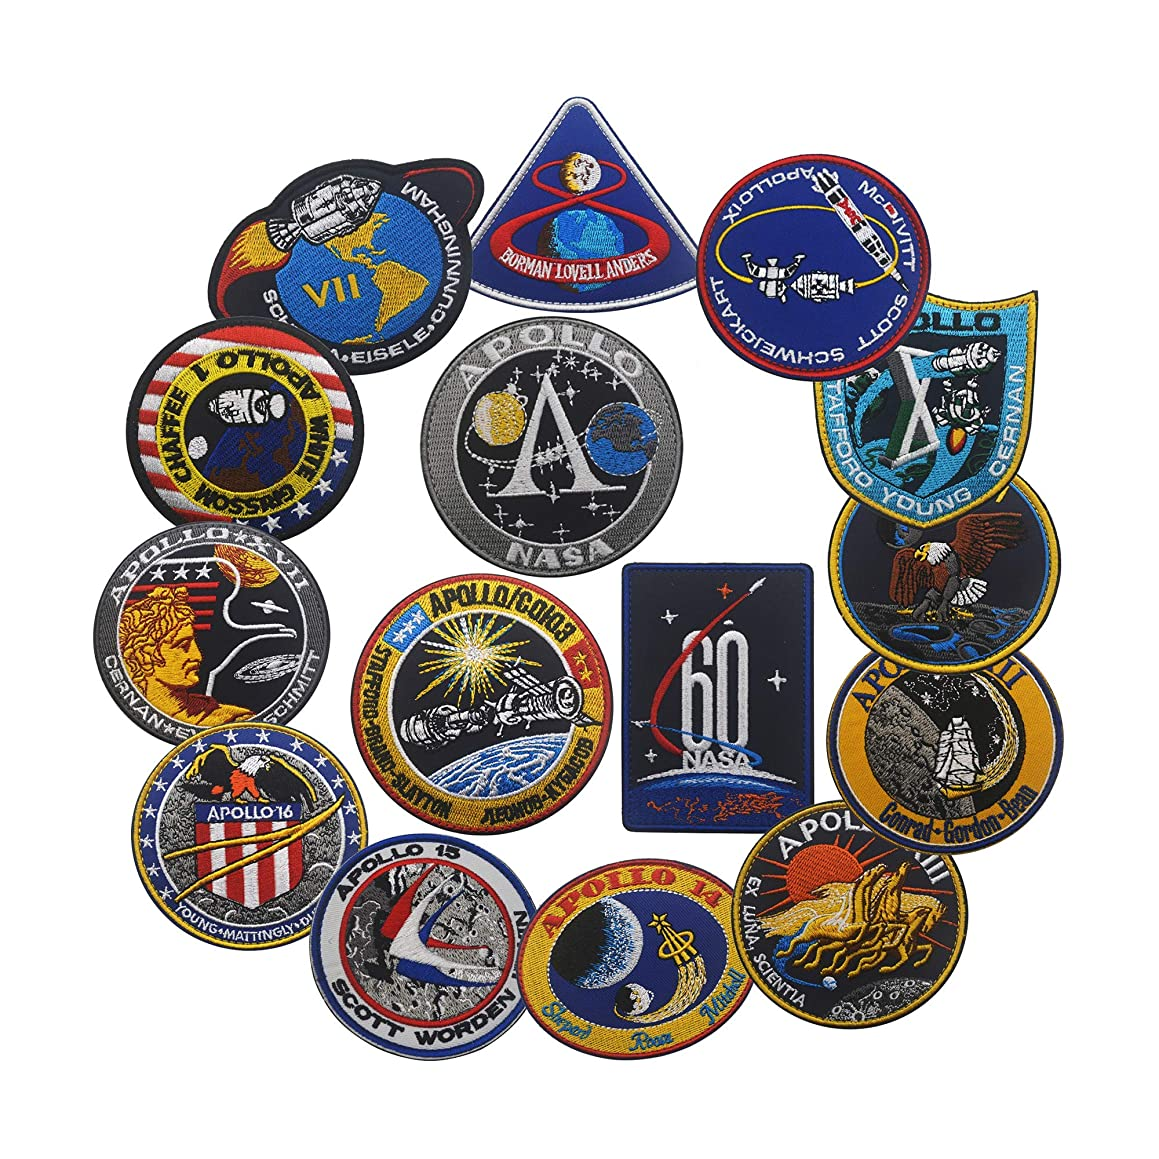 NASA Apollo1,7,8,9,10,11,12,13,14,15,16,17, Space Embroidered Patches,60th Anniversary Logo, DIY Embroidered Patch Costume Applique Badge Set